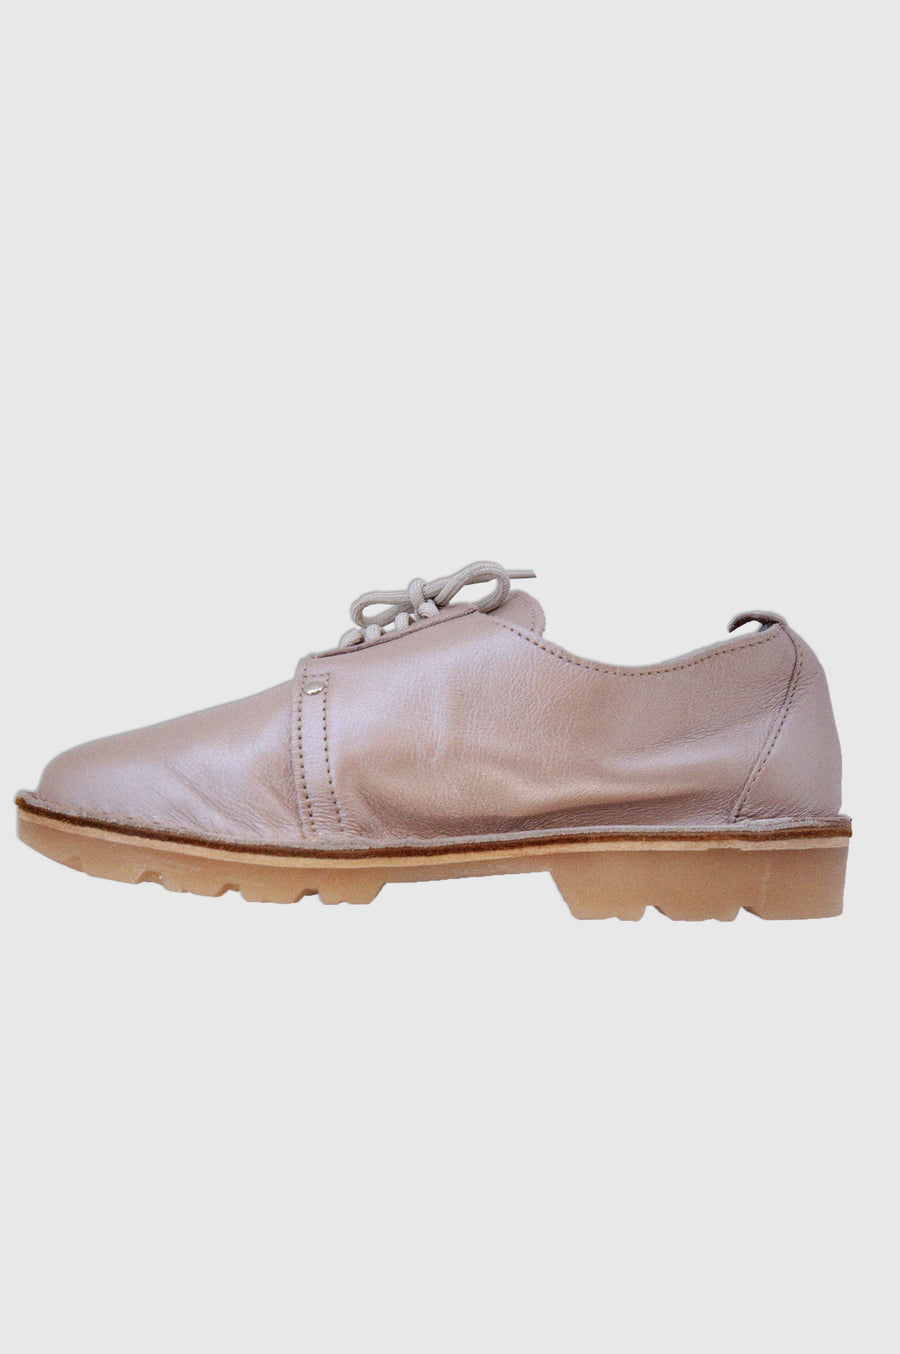 SHOES | SIDE LACE UP VELLIES | ROSE GOLD